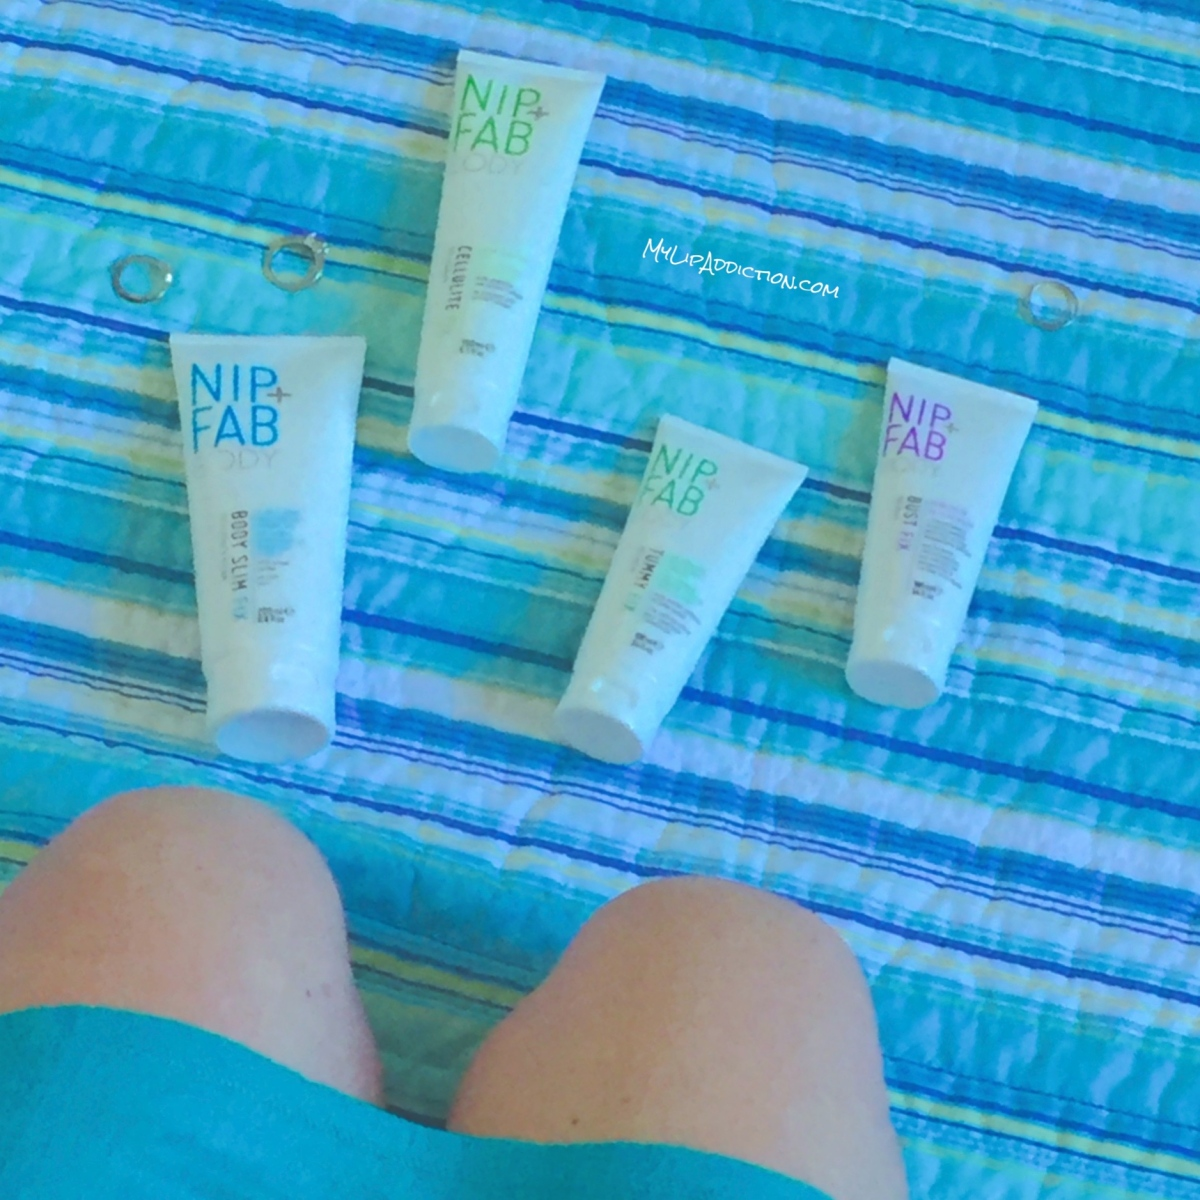 Nip+Fab New Body Care Line - A Review - MyLipAddiction.com